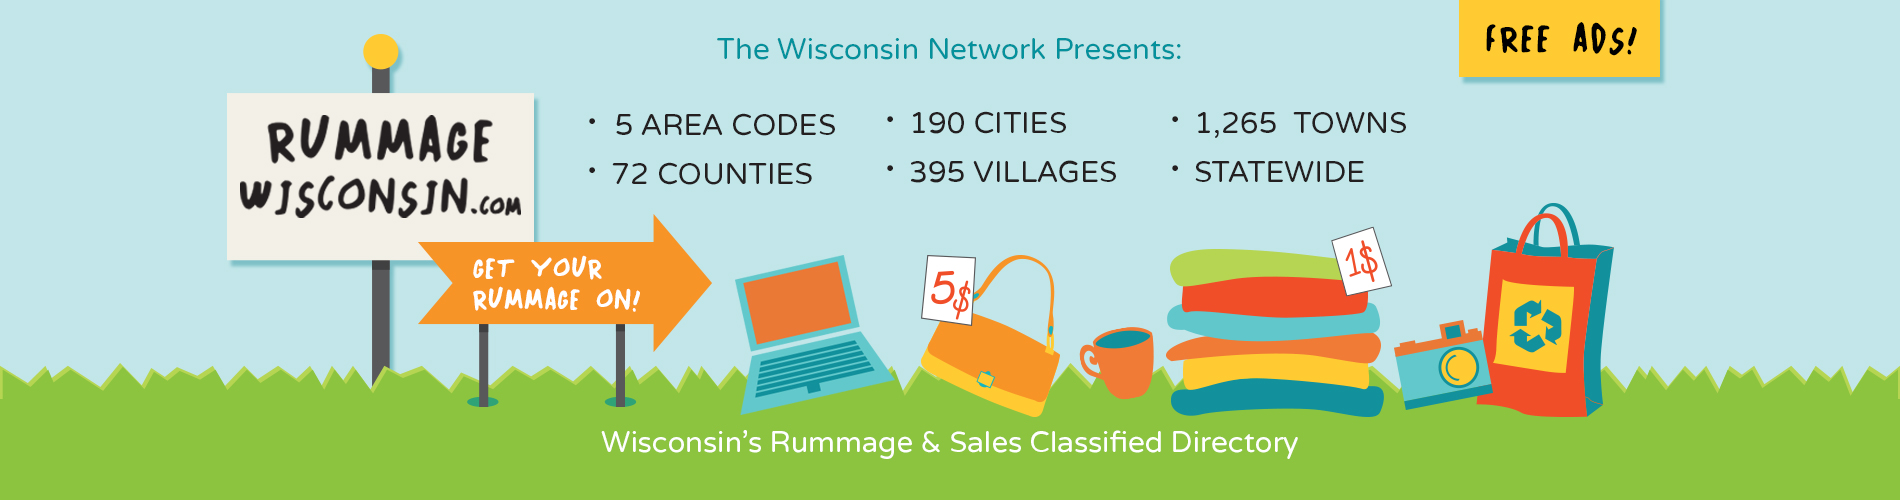 Rummage Wisconsin.com, Free Rummage Sale Classified Ads, Rummage ...